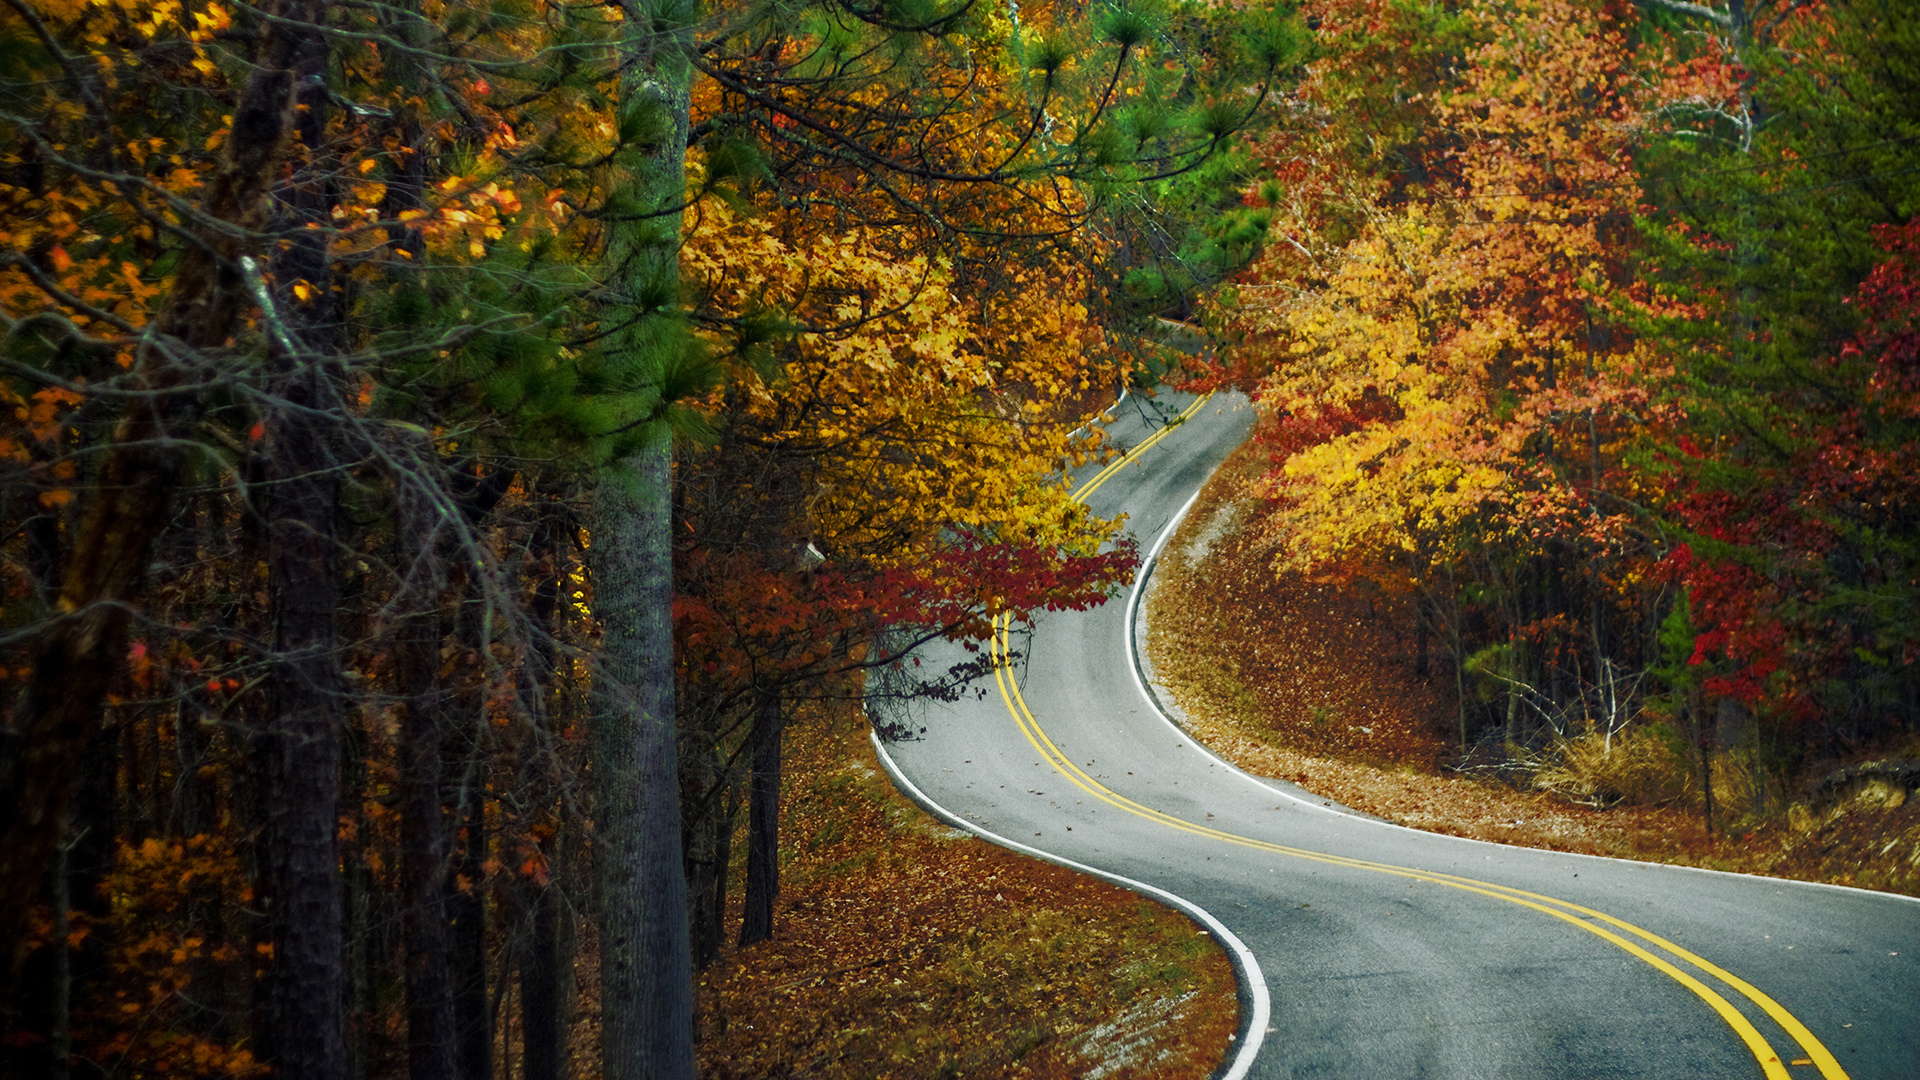 31846 download wallpaper Landscape, Roads, Autumn screensavers and pictures for free